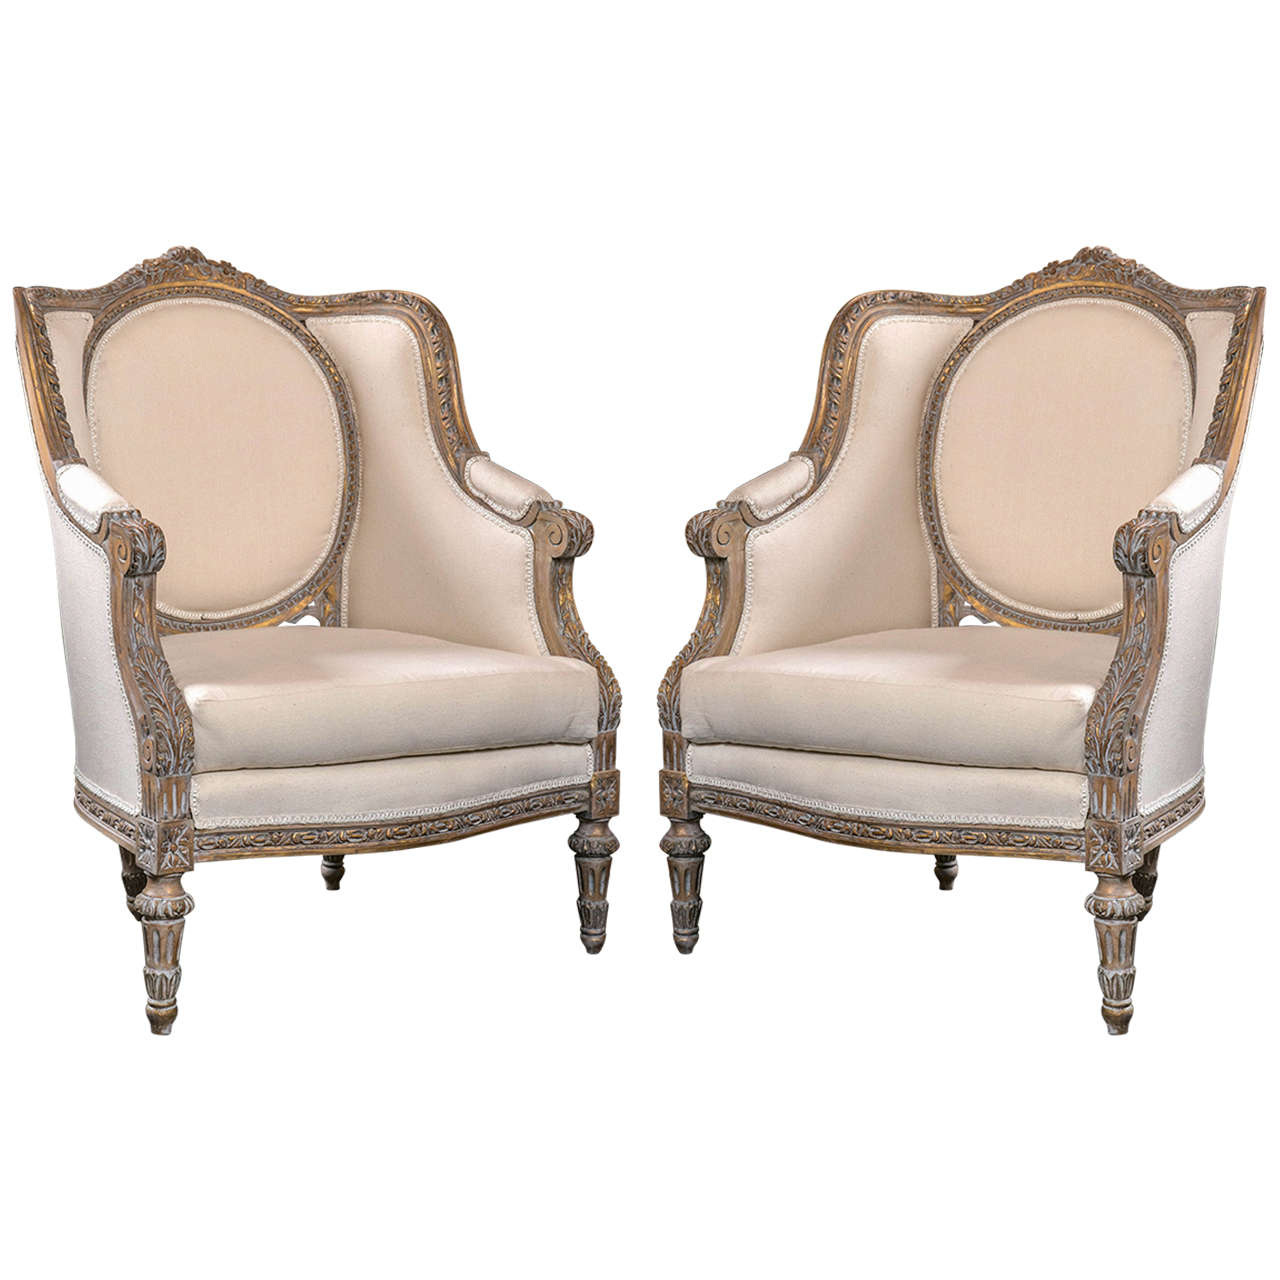 french bergere chair indoor lounge pair of vintage louis xvi style chairs at